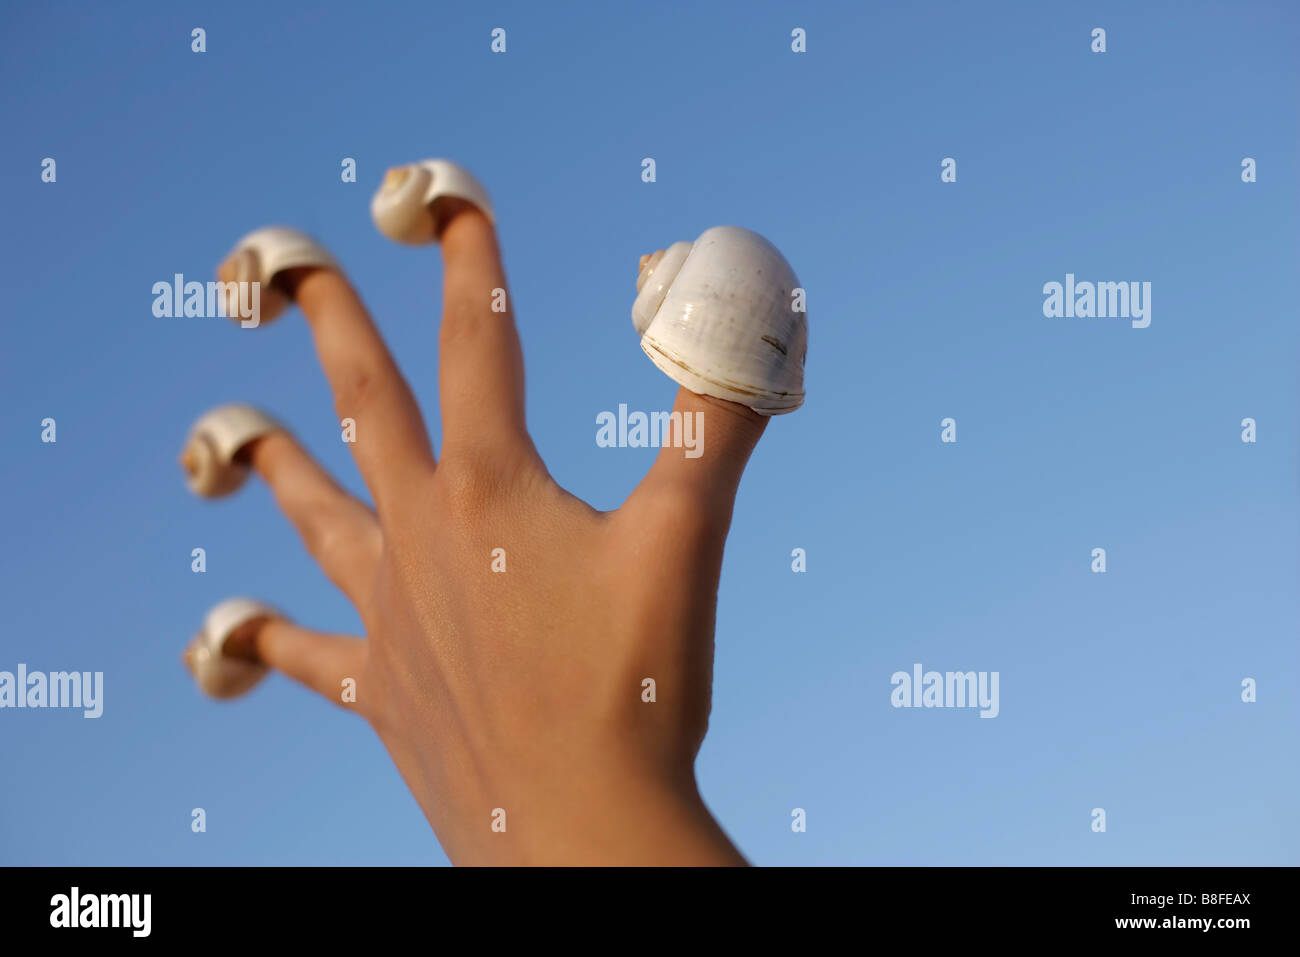 Snail-shells on every finger of a hand - Stock Image